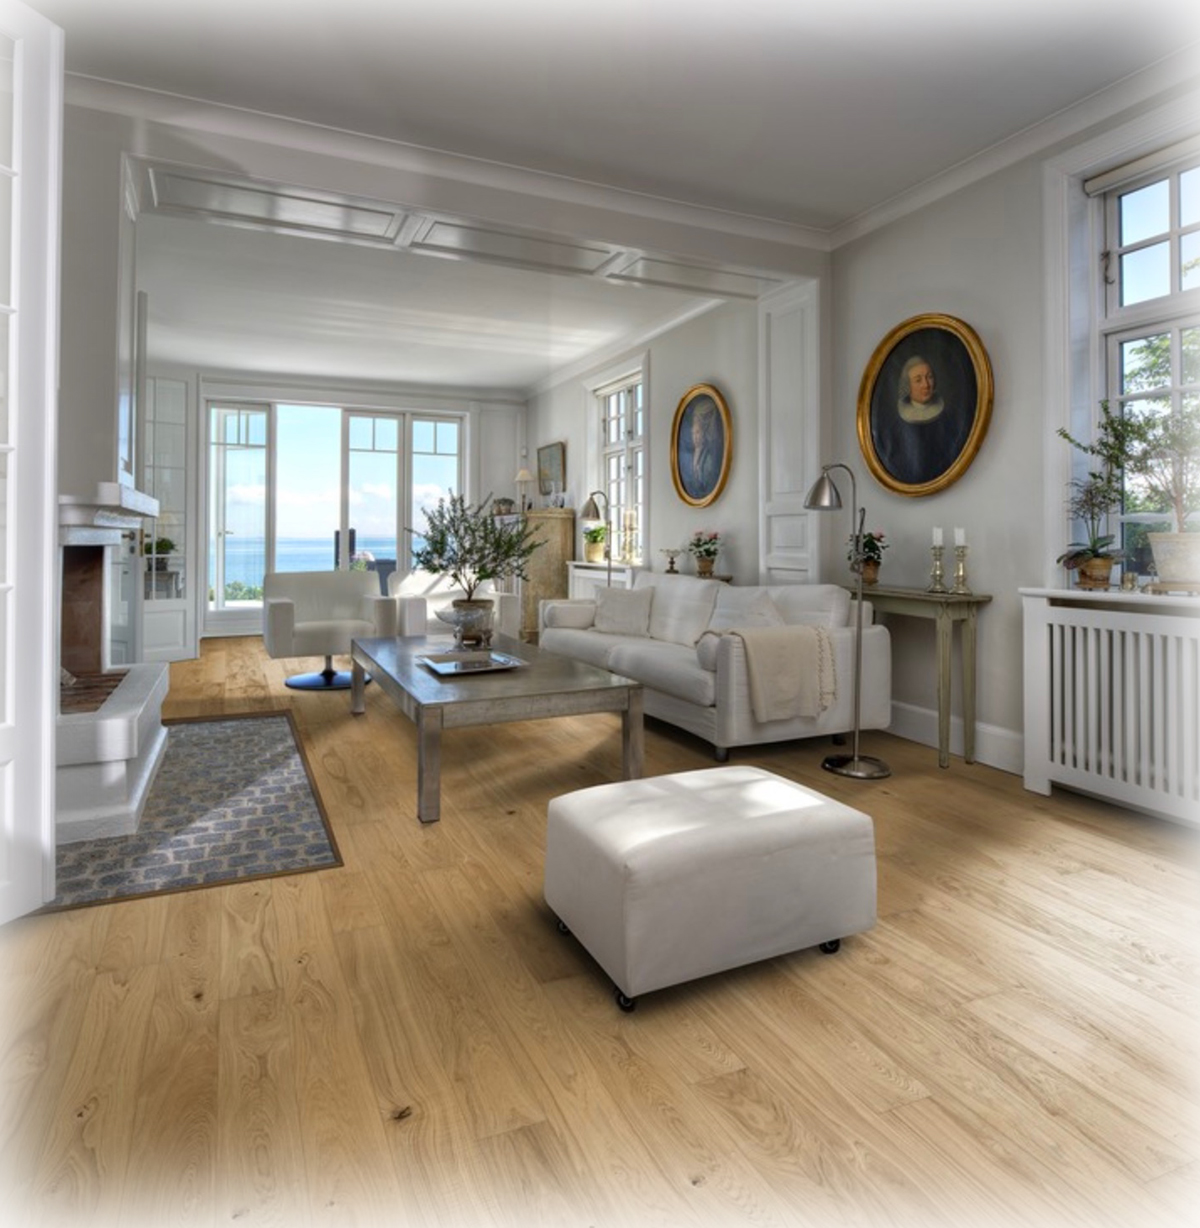 A High End Flooring Choice Among Celebrated Designers Real Wood Offers Wide Range Of Benefits And Is Also Considered Renewable When Installed